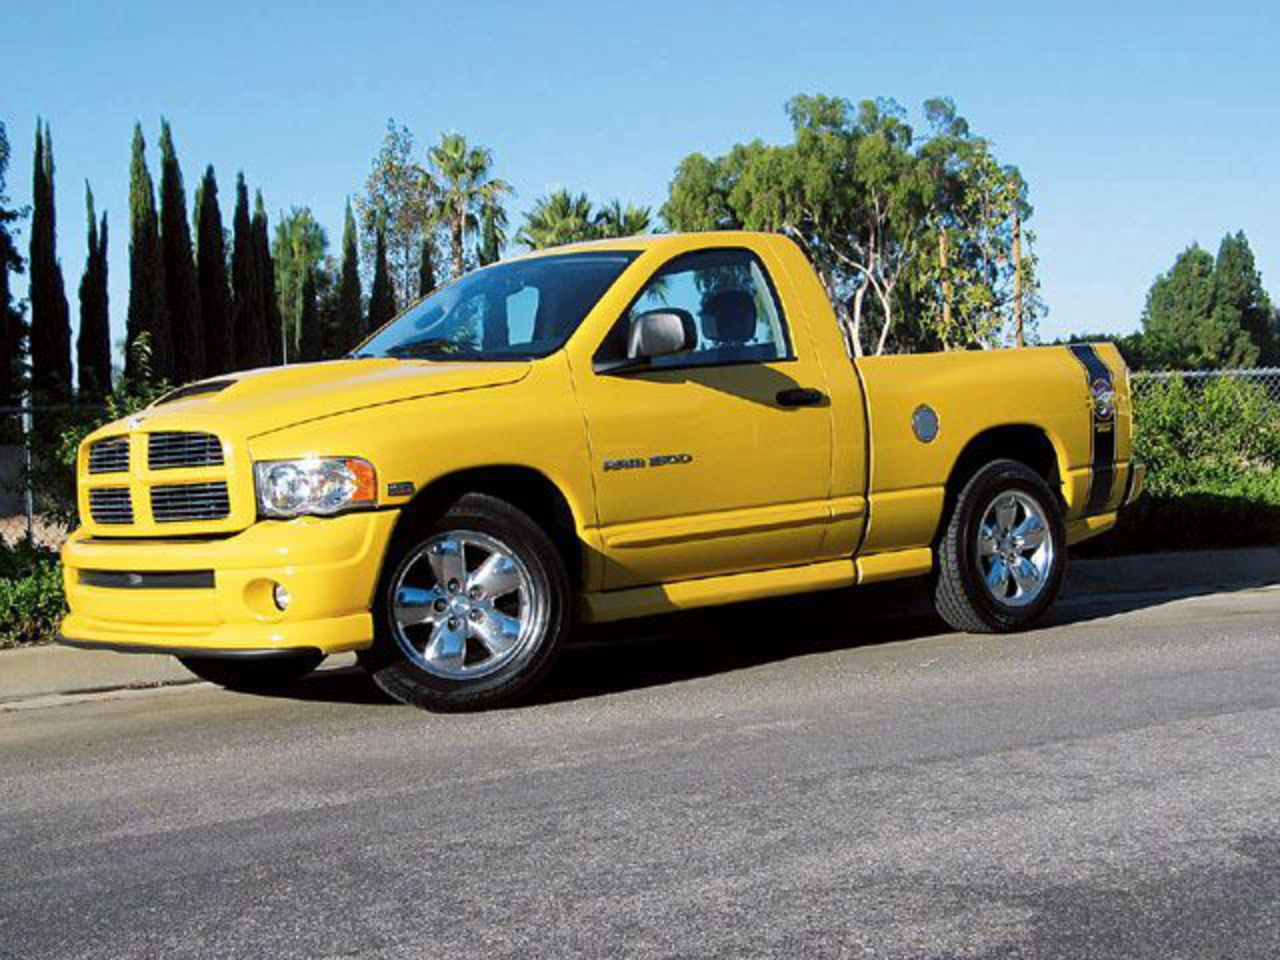 Topworldauto Photos Of Dodge Ram 1500 Slt Rumble Bee Photo 2005 Srt 10 Wiring Diagram Huge Collection Cars Auto News And